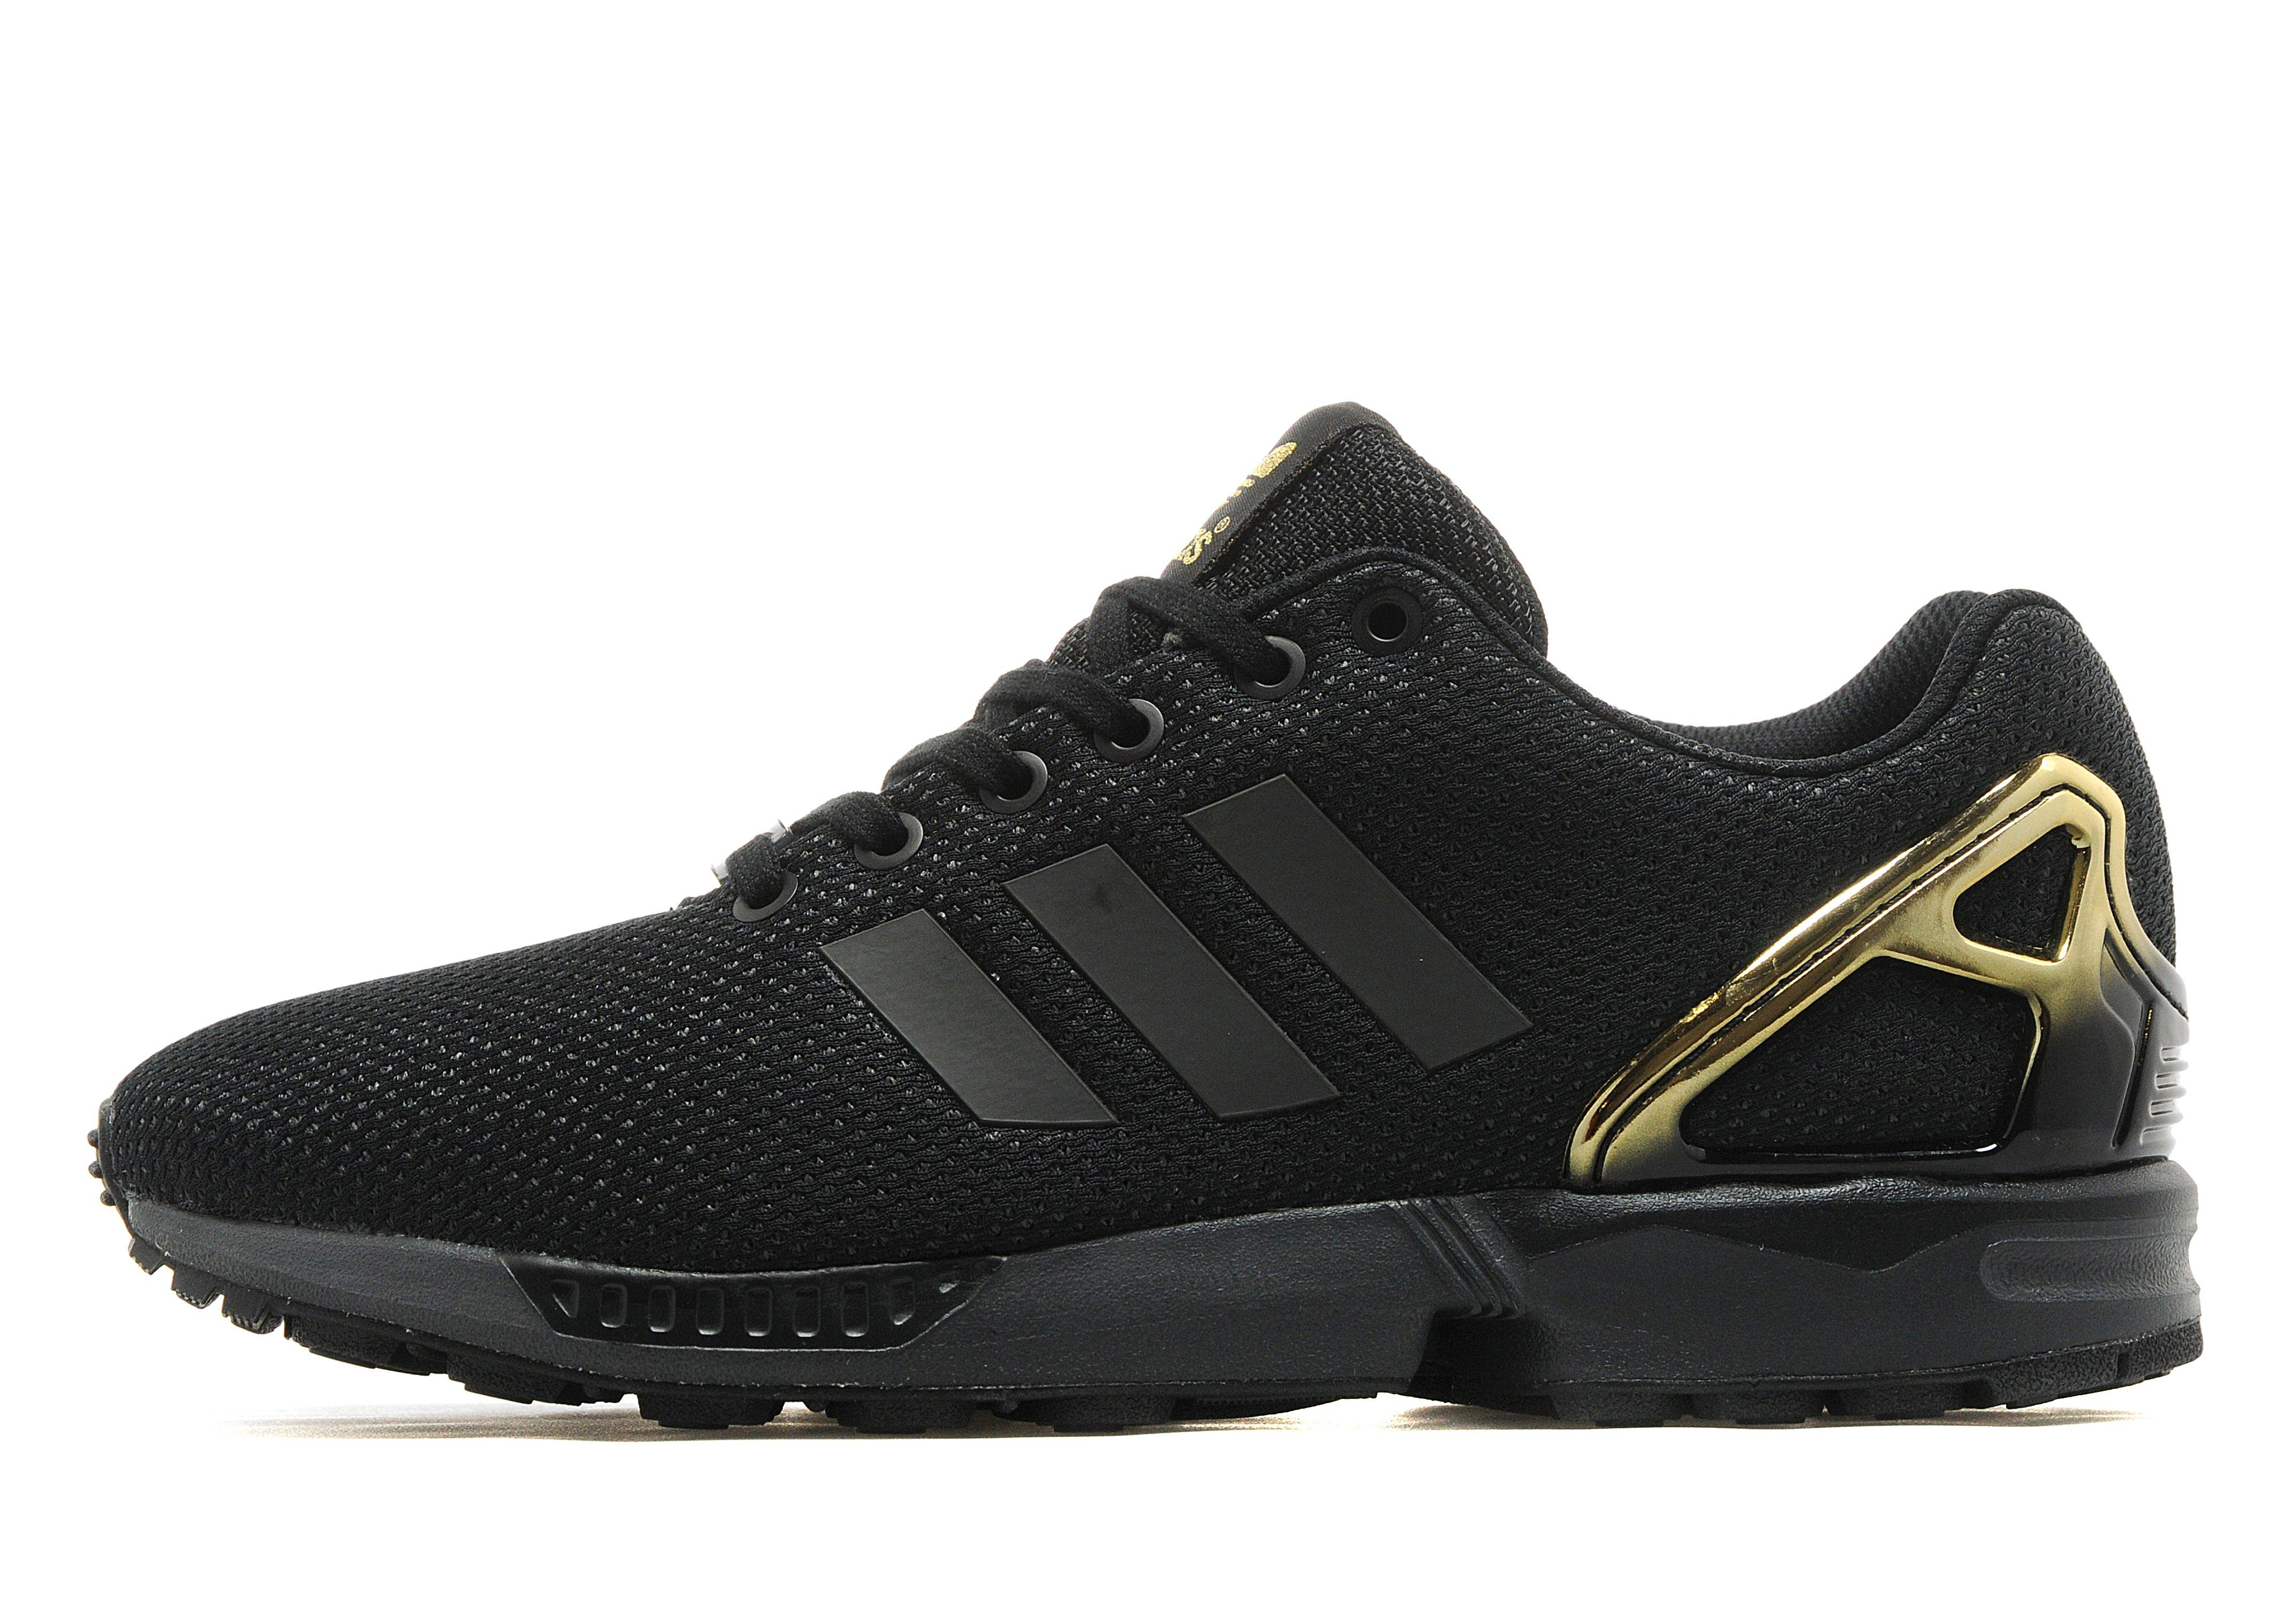 Adidas Zx Flux Black And Gold Adidasoutlettrainers.co.uk